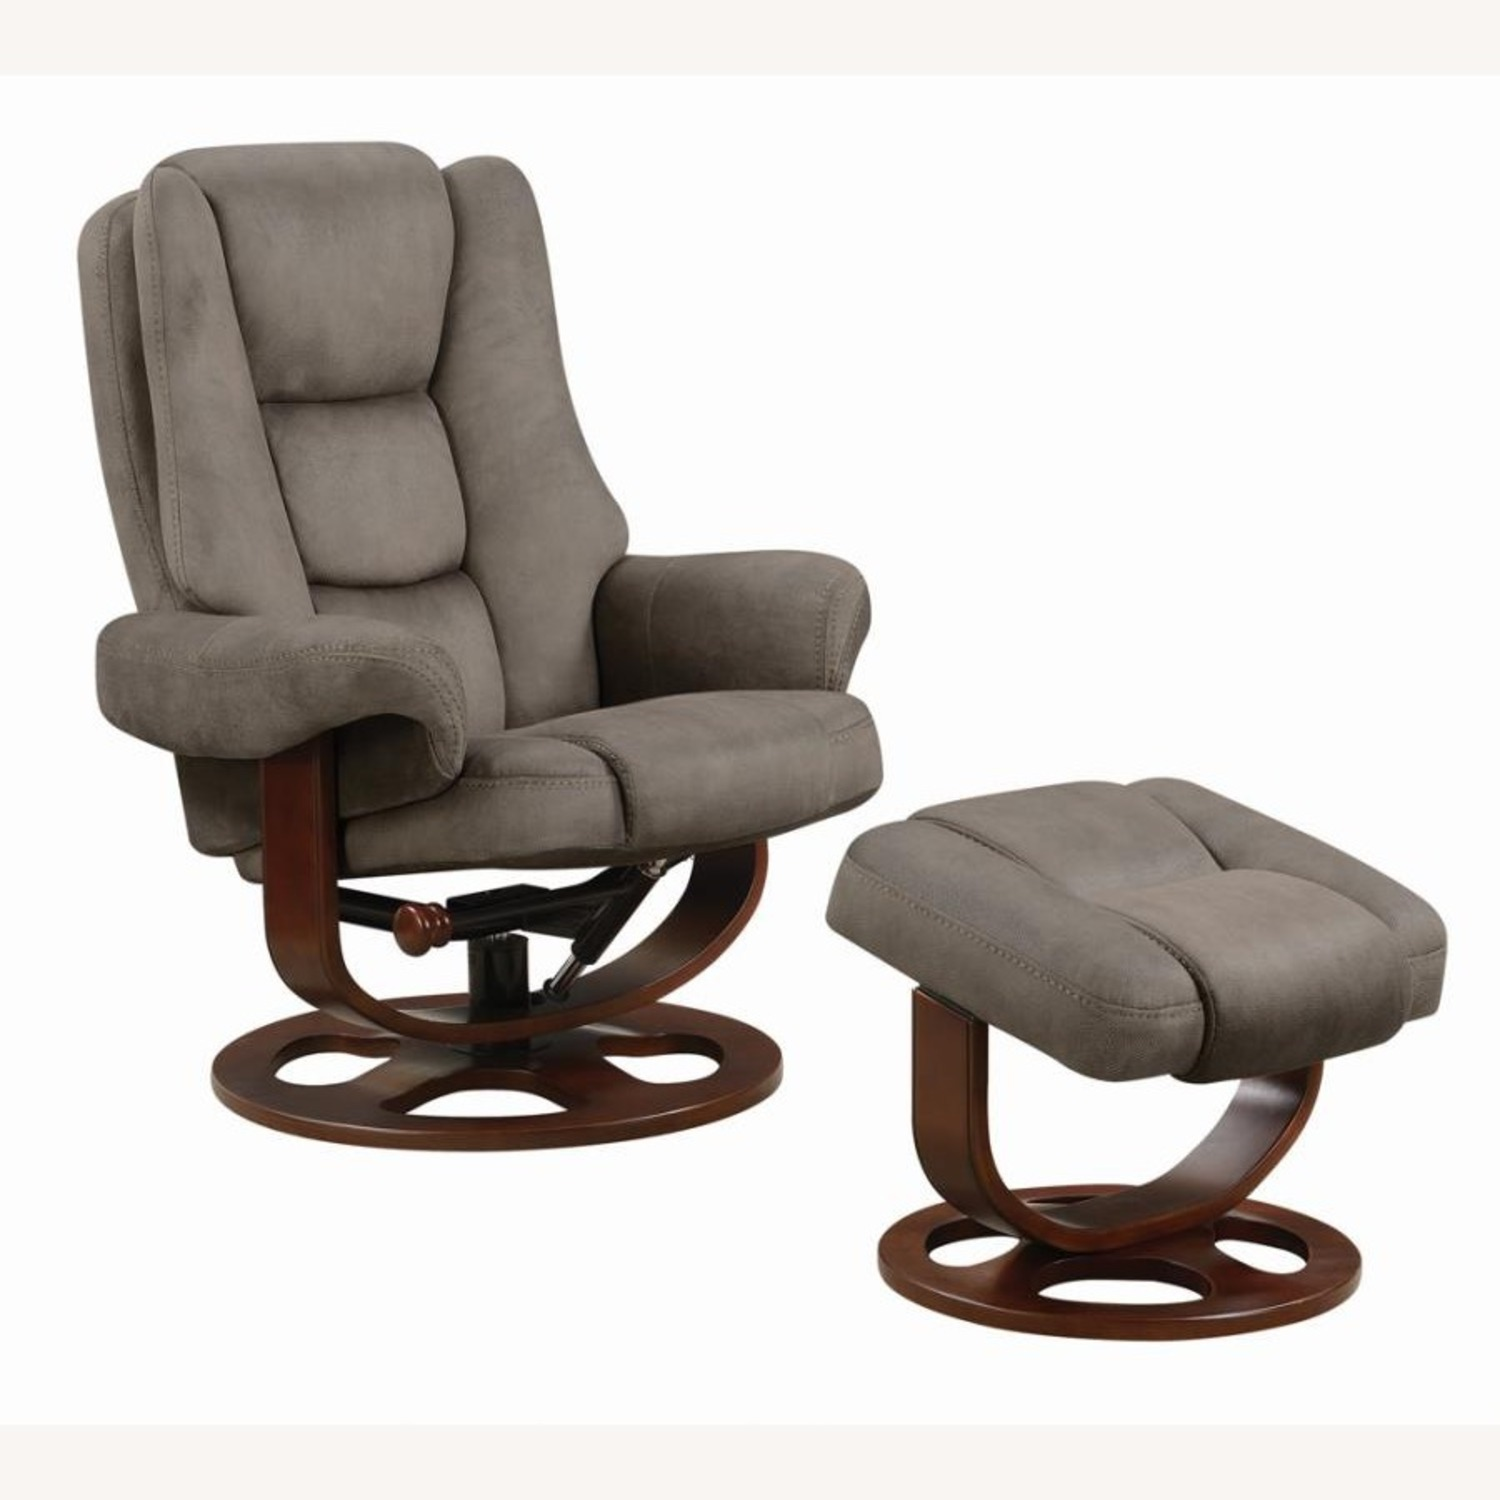 Recliner W/ Ottoman In 2-Tone Grey Faux Suede - image-0